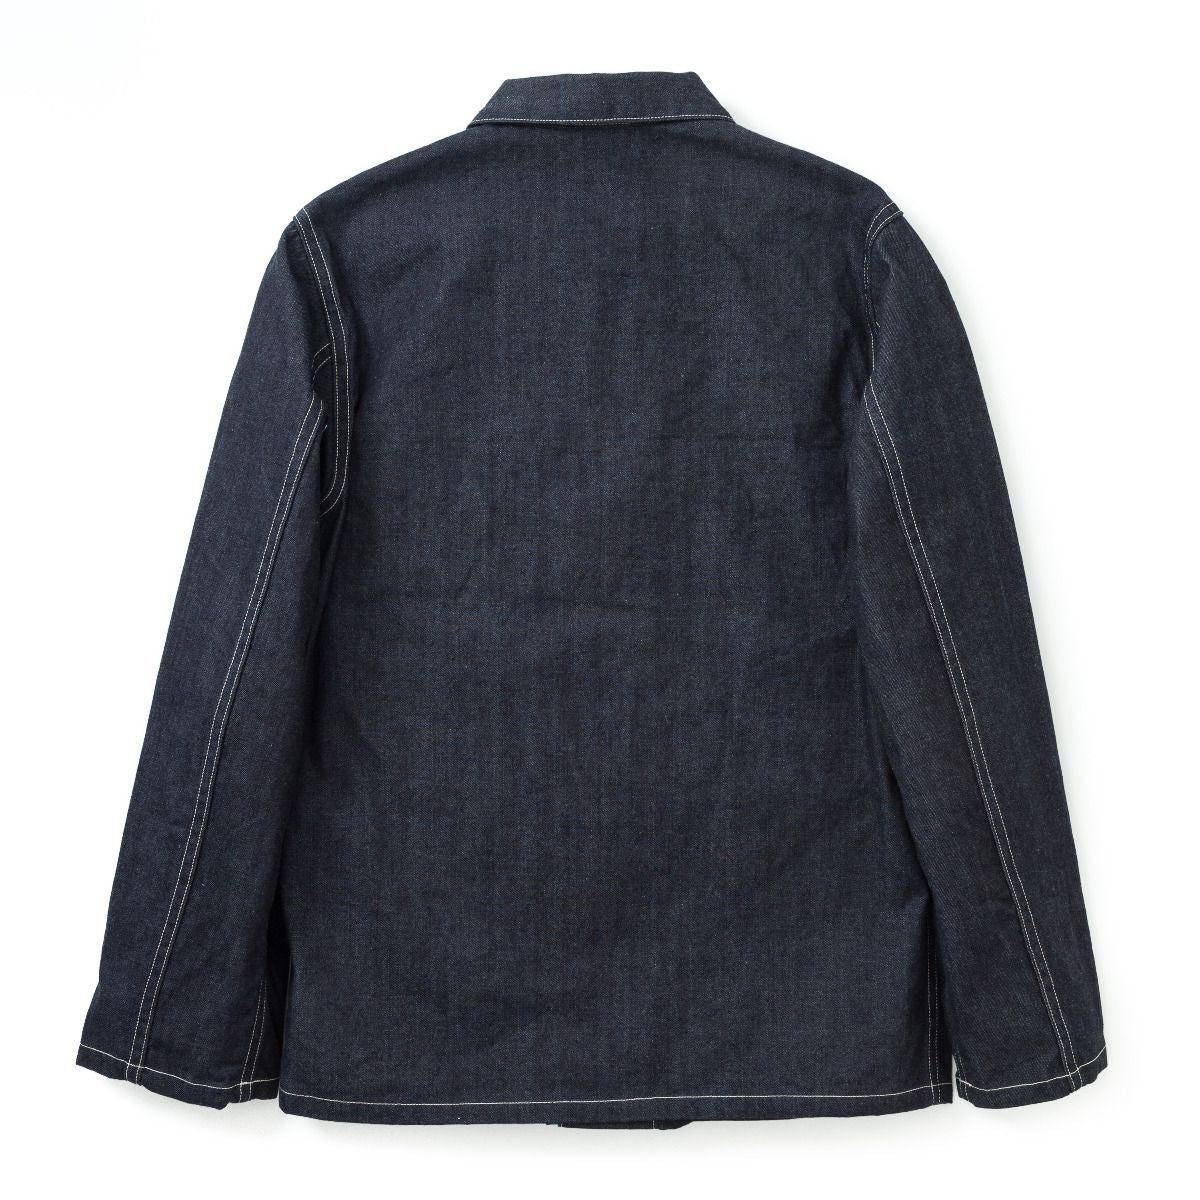 The Real McCoy's Work Coat Blue Denim